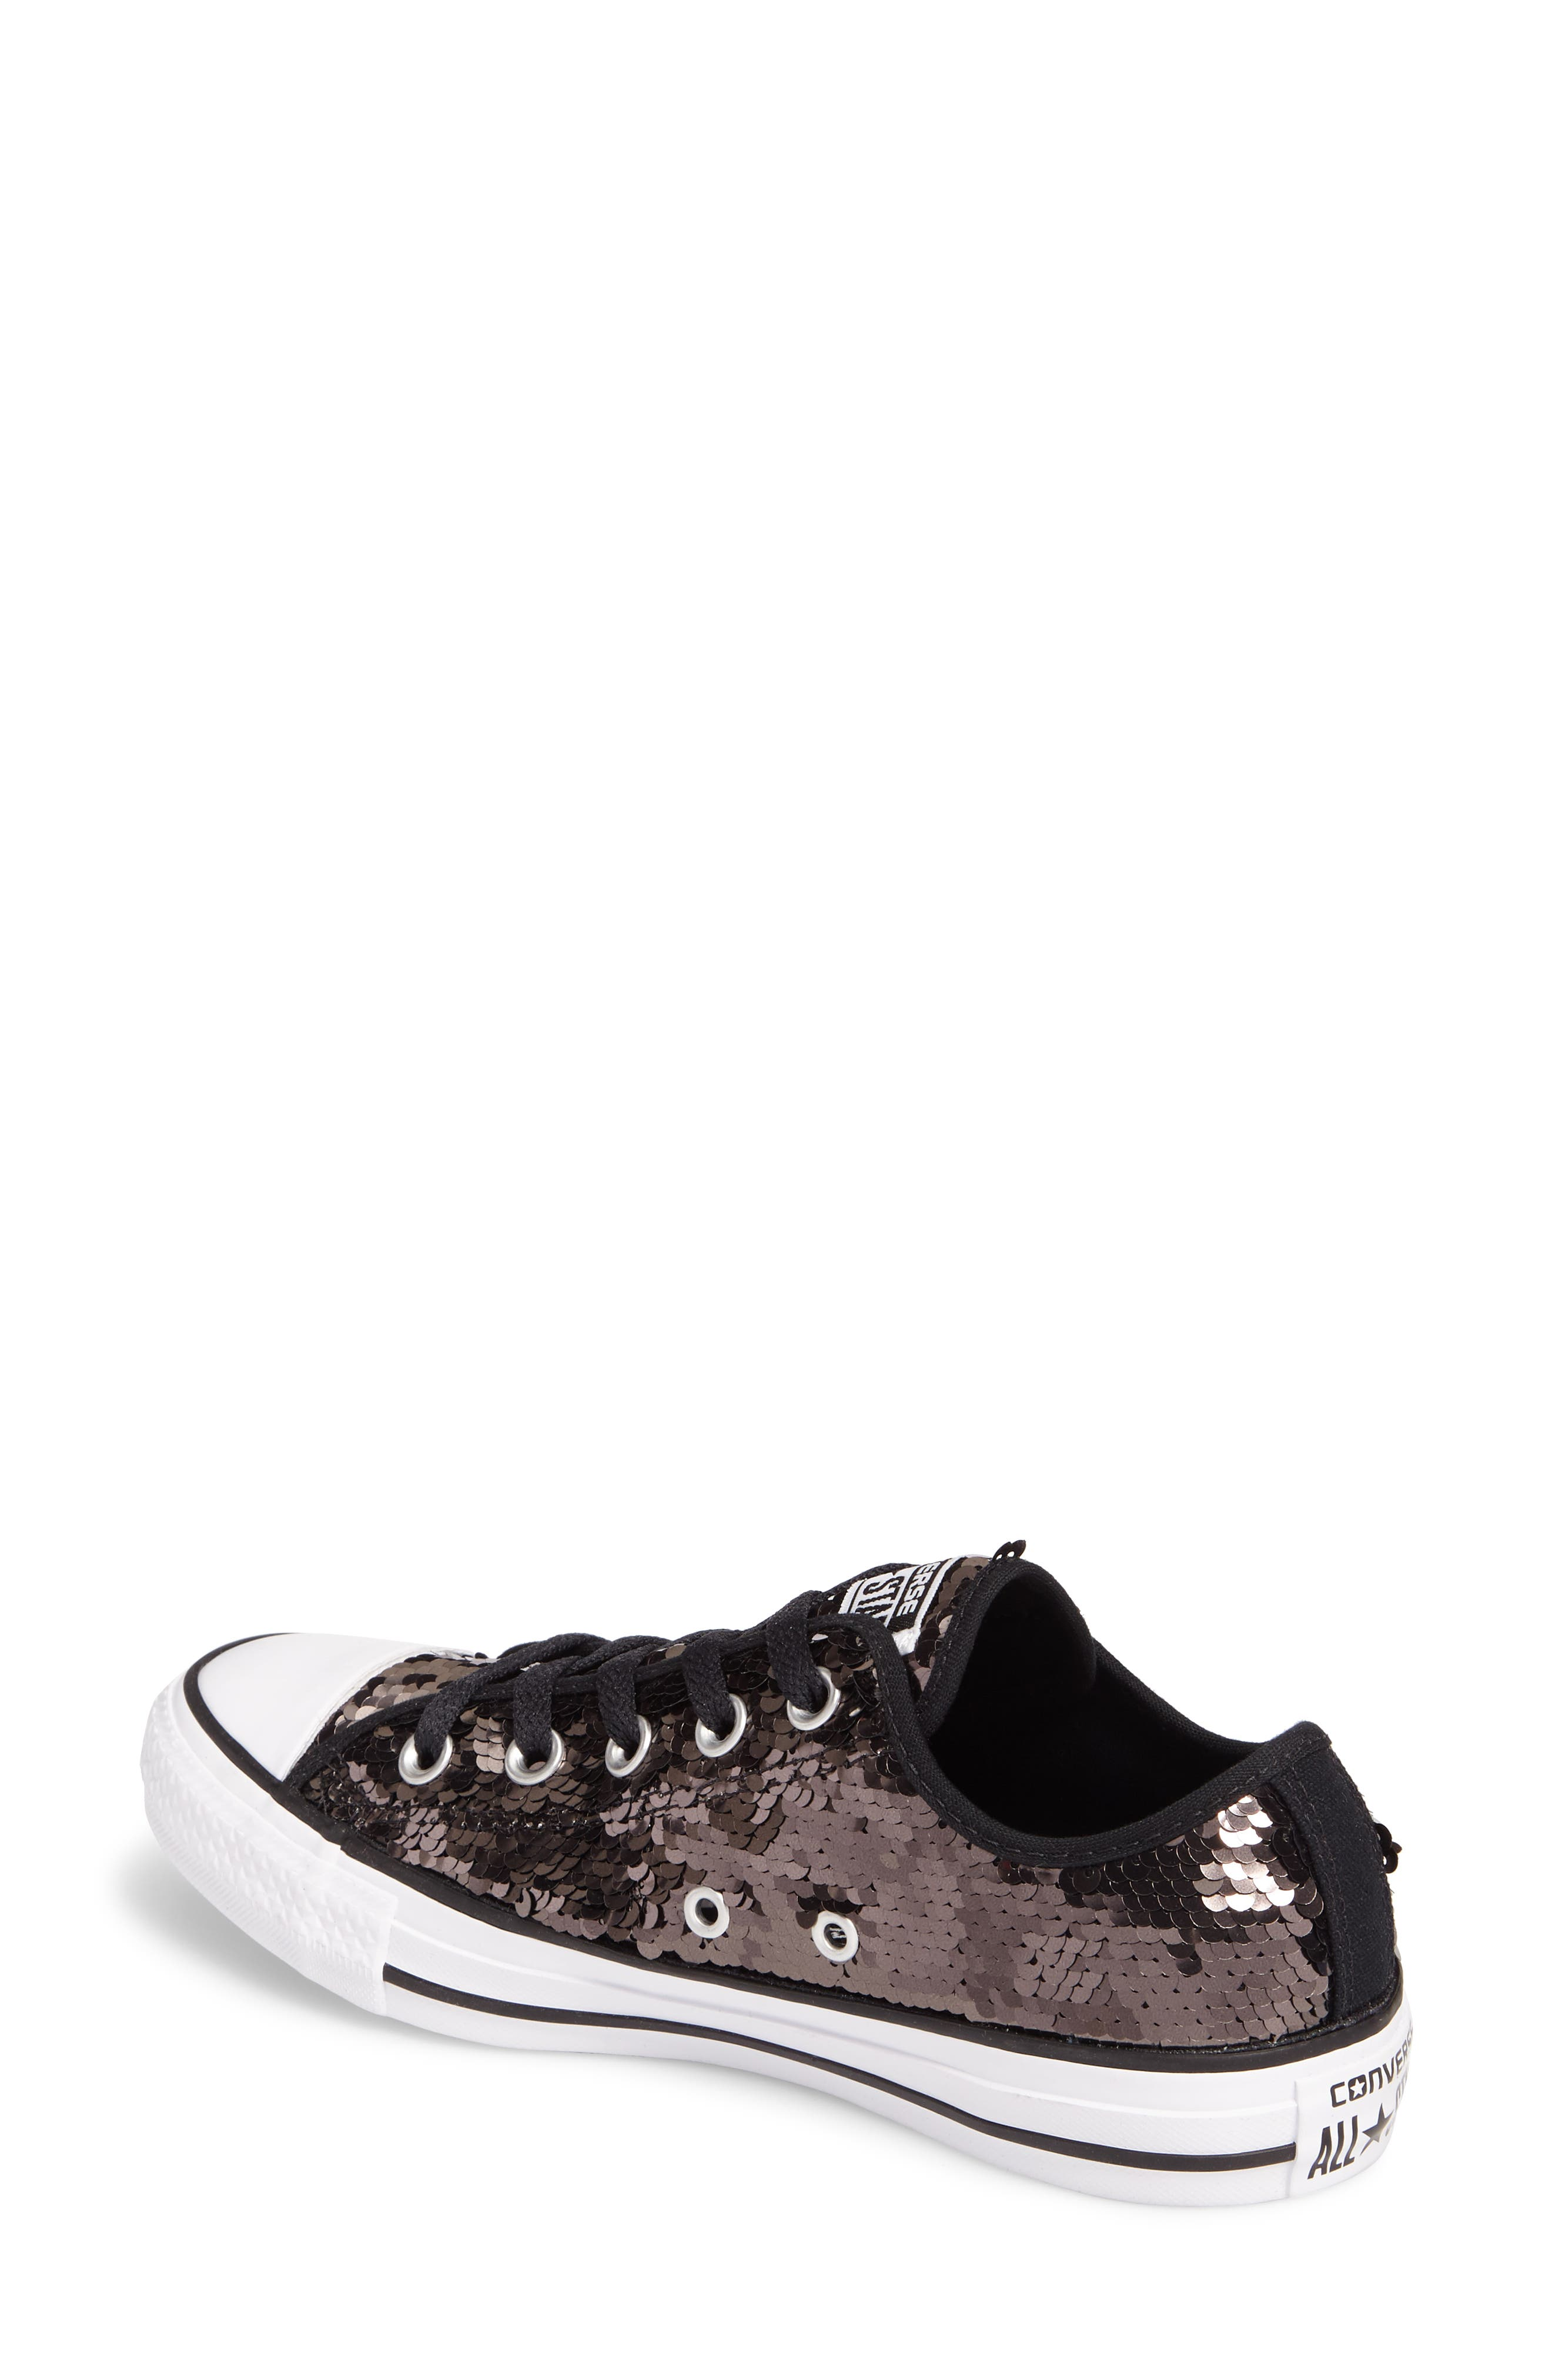 Chuck Taylor<sup>®</sup> All Star<sup>®</sup> Sequin Low Top Sneaker,                             Alternate thumbnail 2, color,                             Gunmetal Sequins